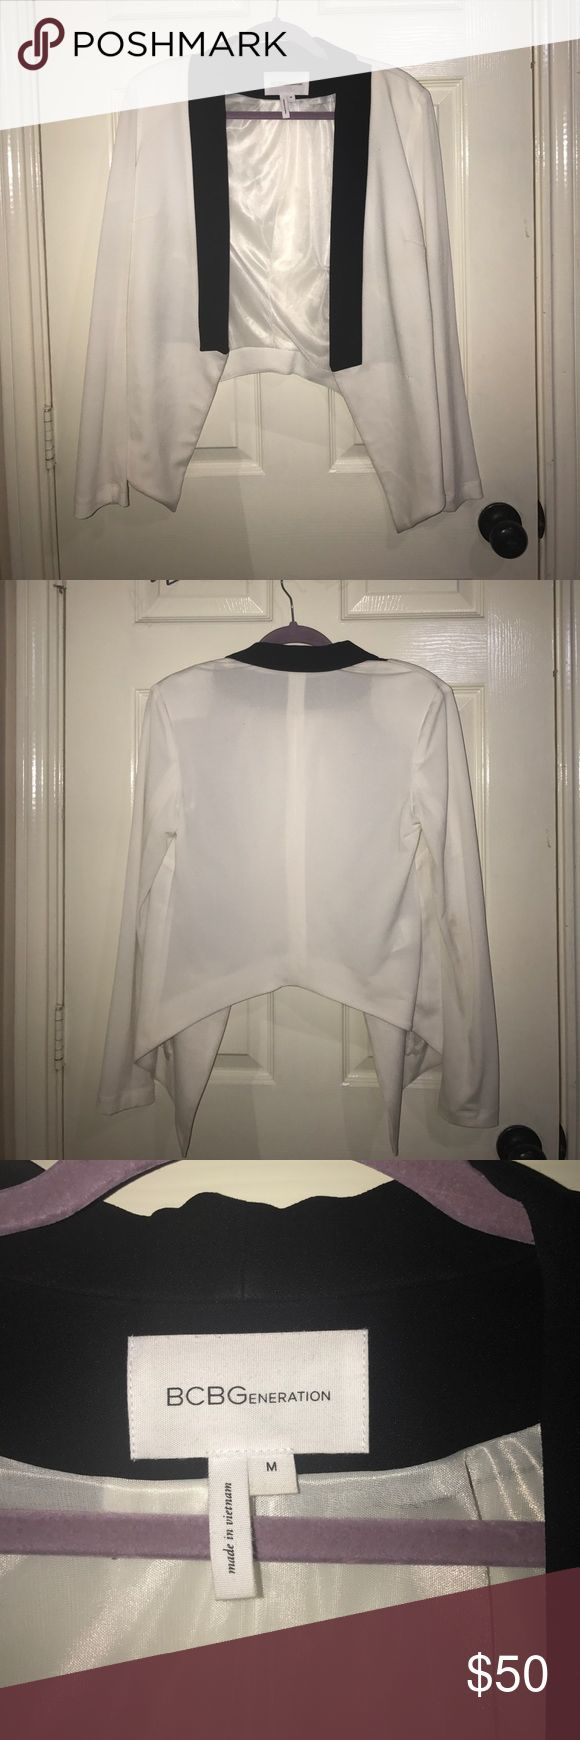 BCBGeneration Blazer White and black BCBG blazer. Has a soft white lining. Worn twice. Small snag on the sleeve but there is not any thread coming out! Negotiable pricing! Medium. BCBGeneration Jackets & Coats Blazers